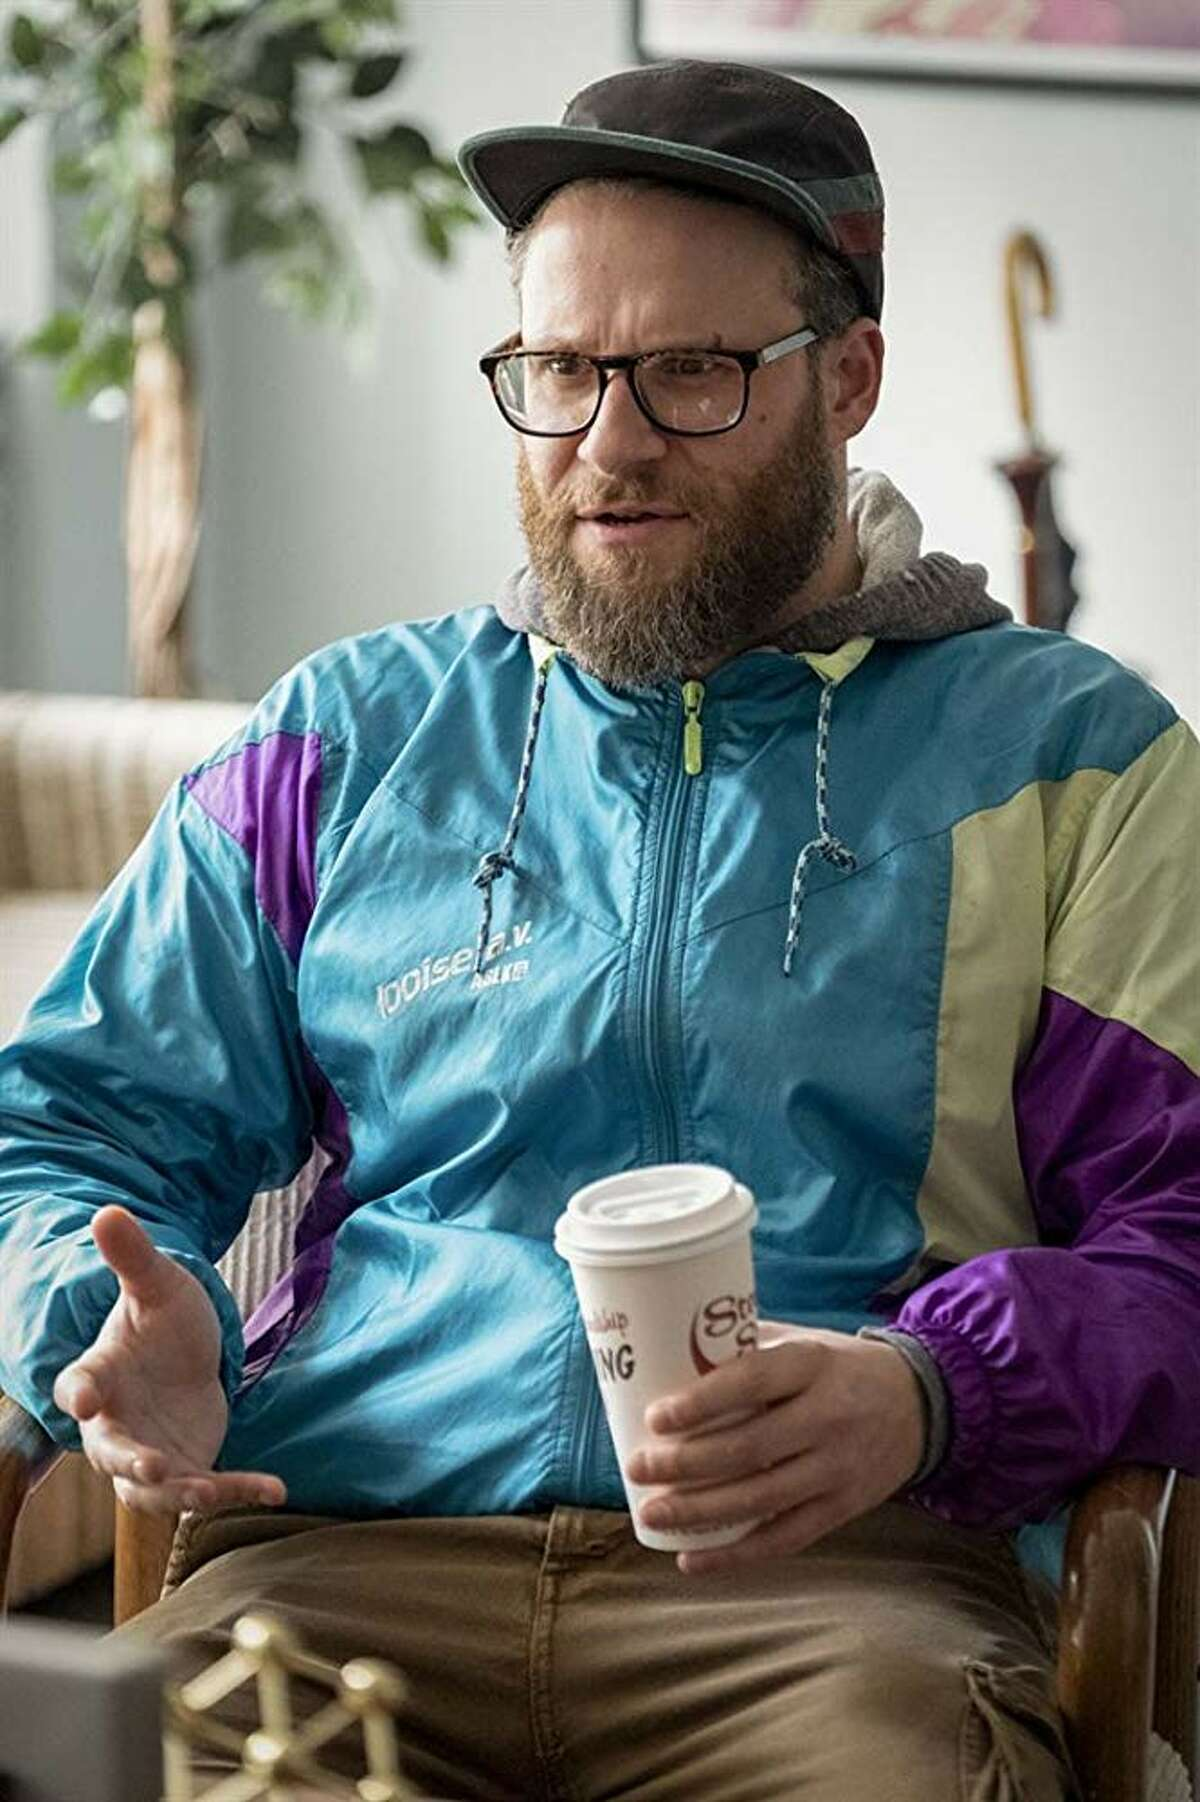 """An image from Lionsgate shows Seth Rogen holding a Stewart's coffee cup in a still from the movie """"Long Shot,"""" opening the first week in May 2019."""